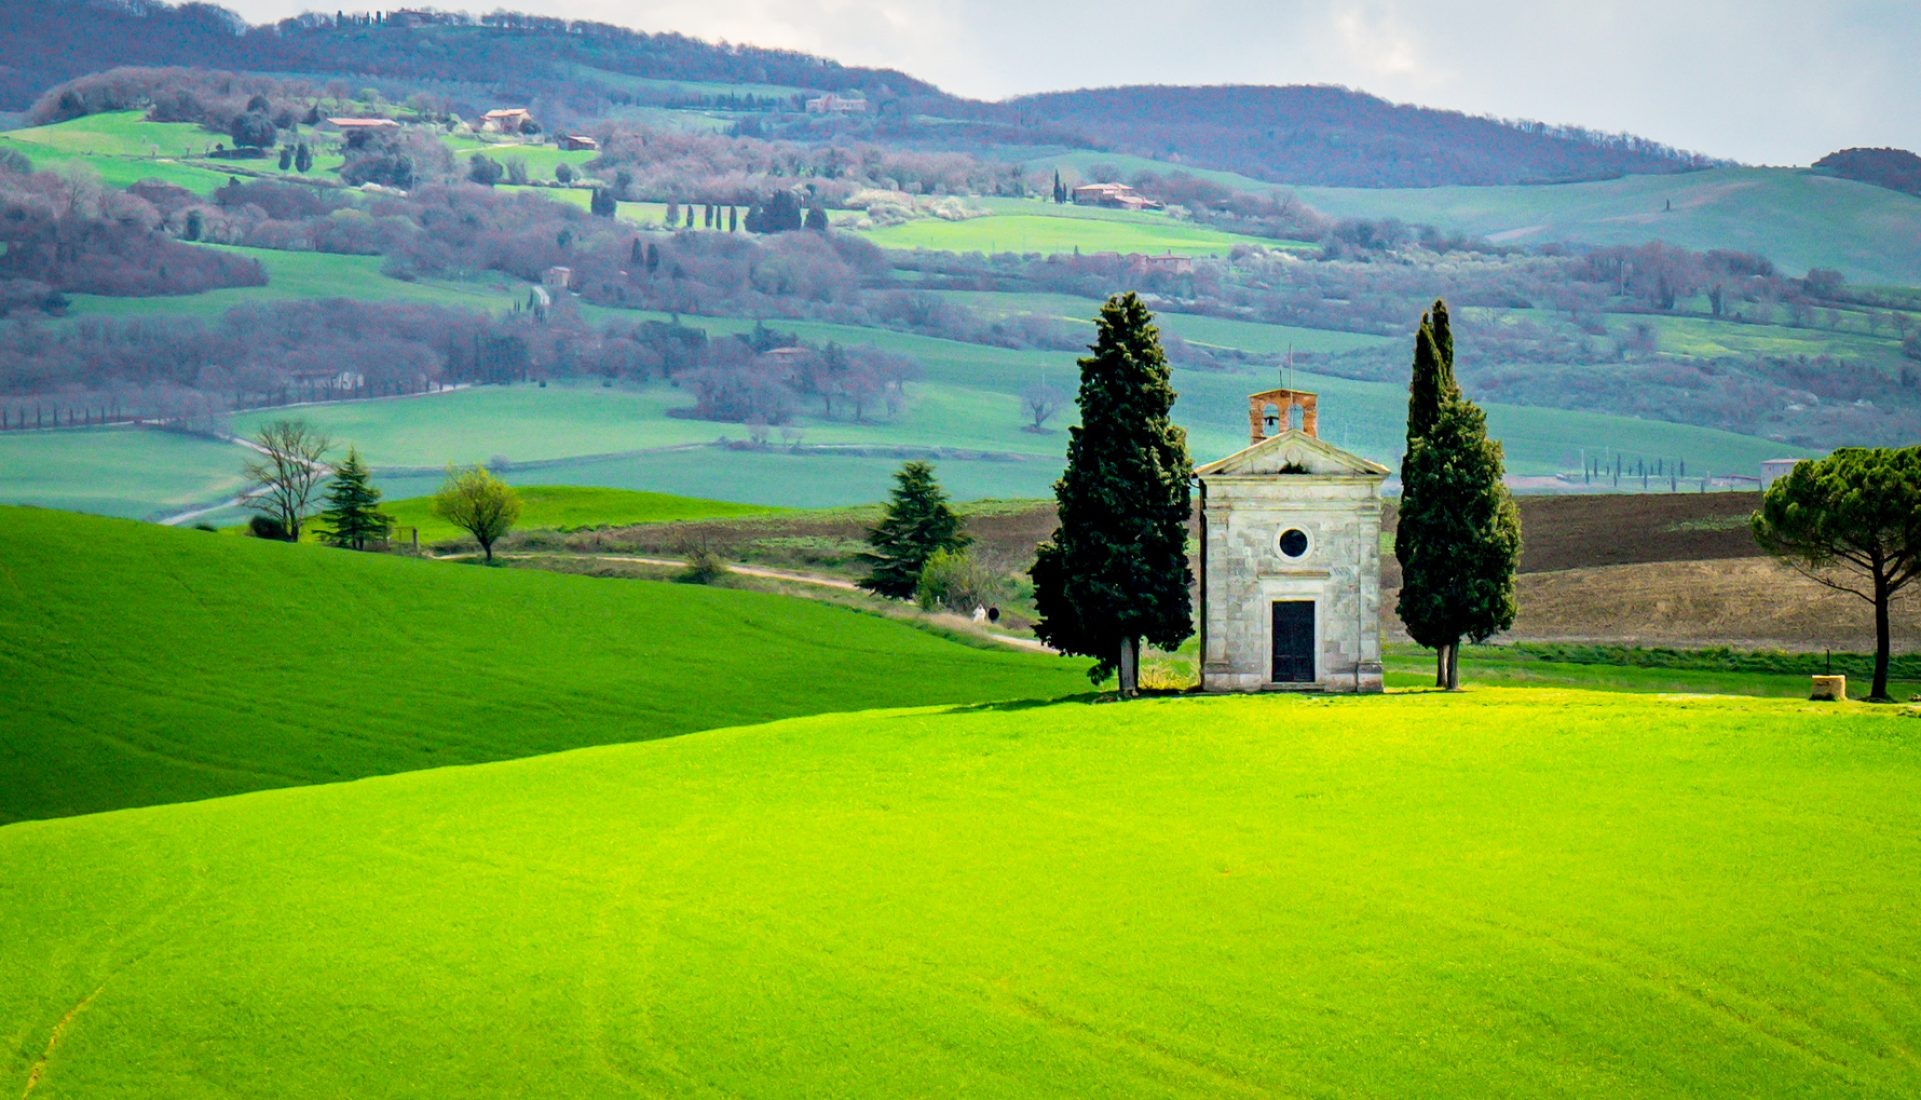 The Chapel of the Madonna di Vitaleta – Tuscany